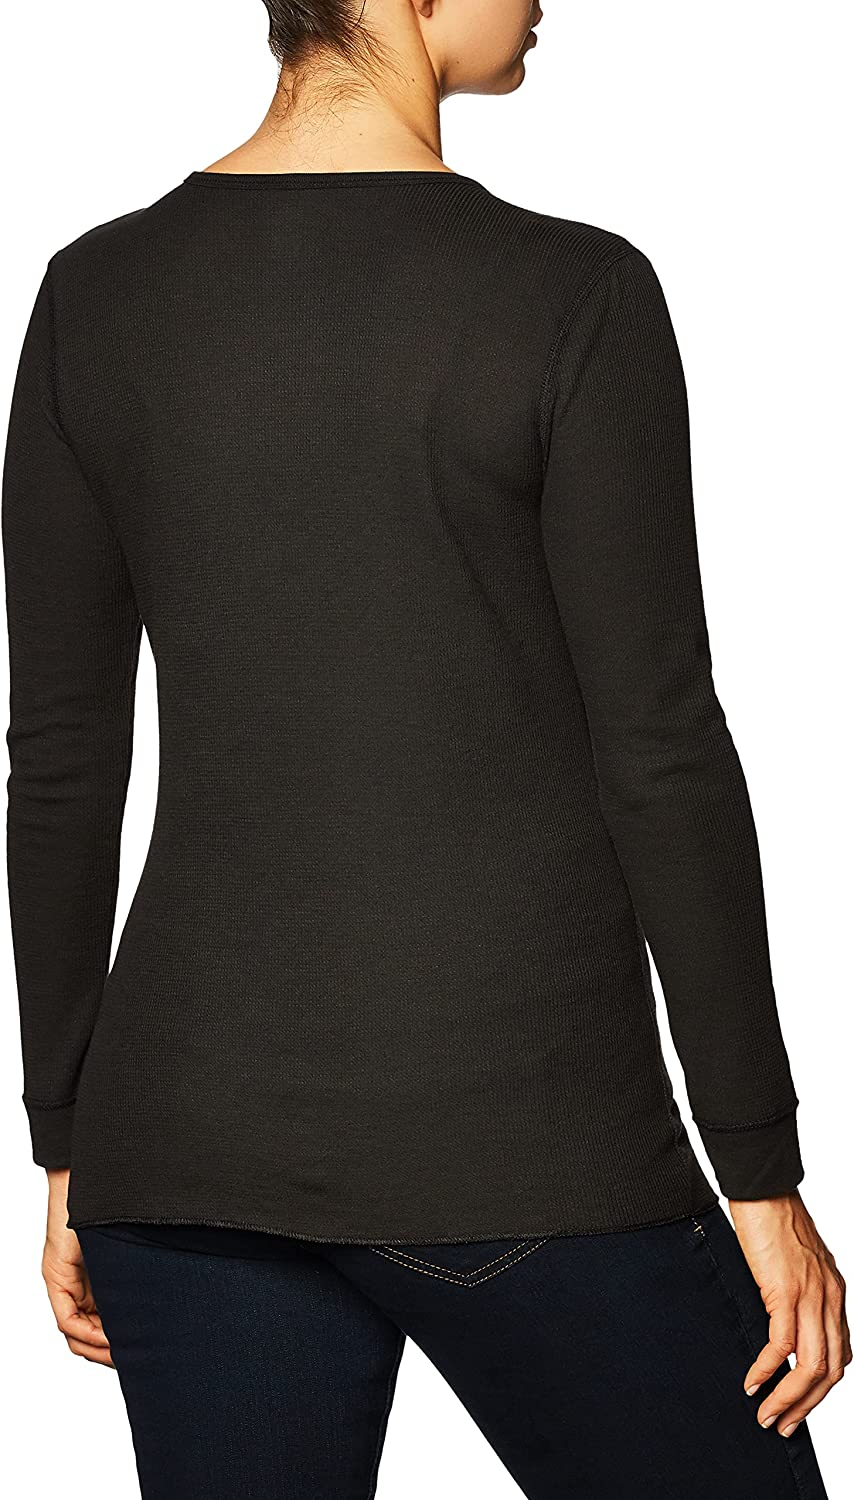 Fruit of the Loom Women's Micro Waffle Premium Thermal V-Neck